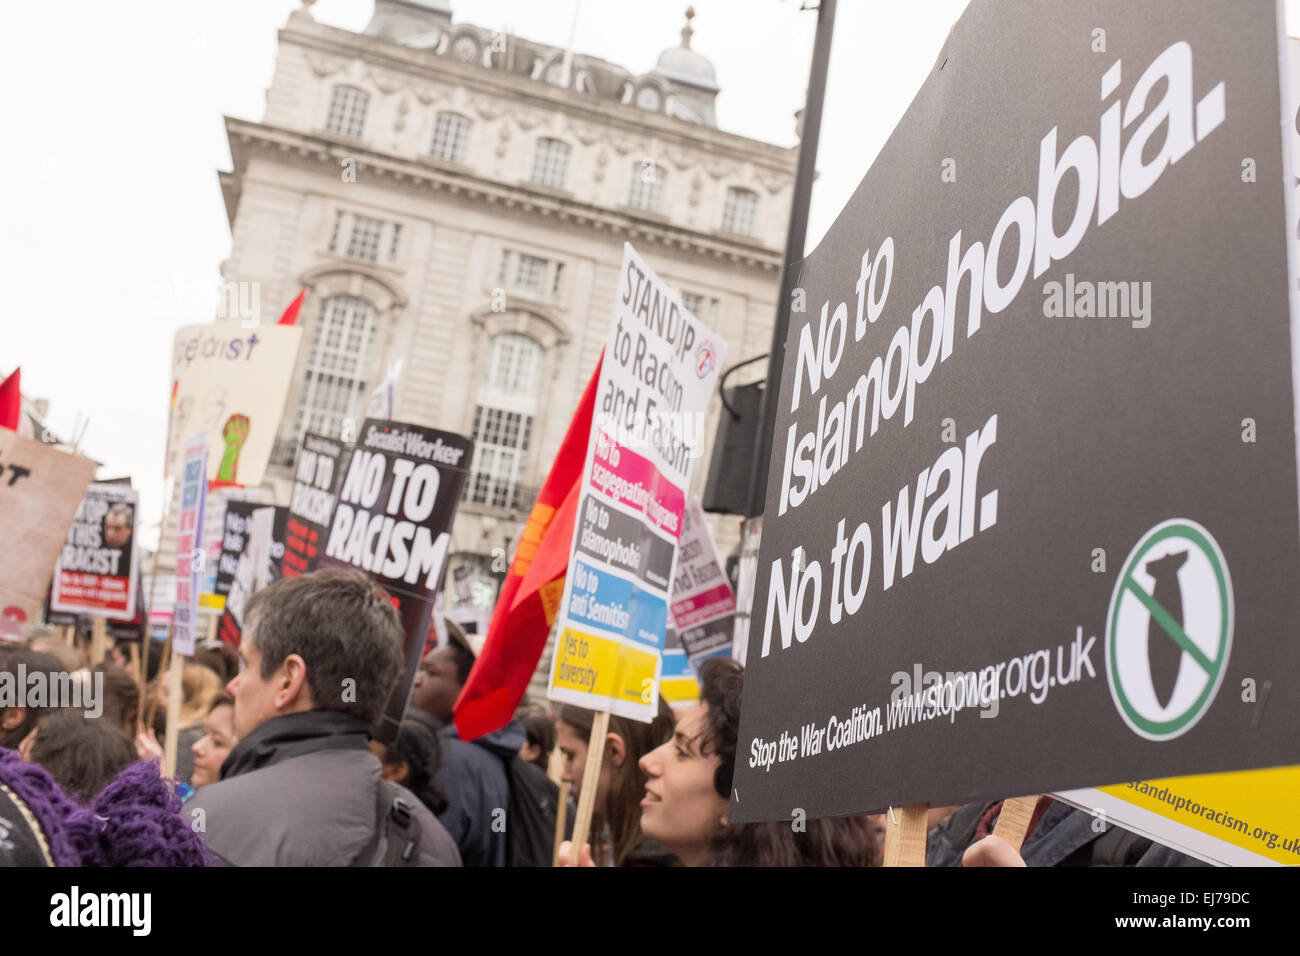 Anti-Racism Demo in London, 21st March 2015 - Stock Image